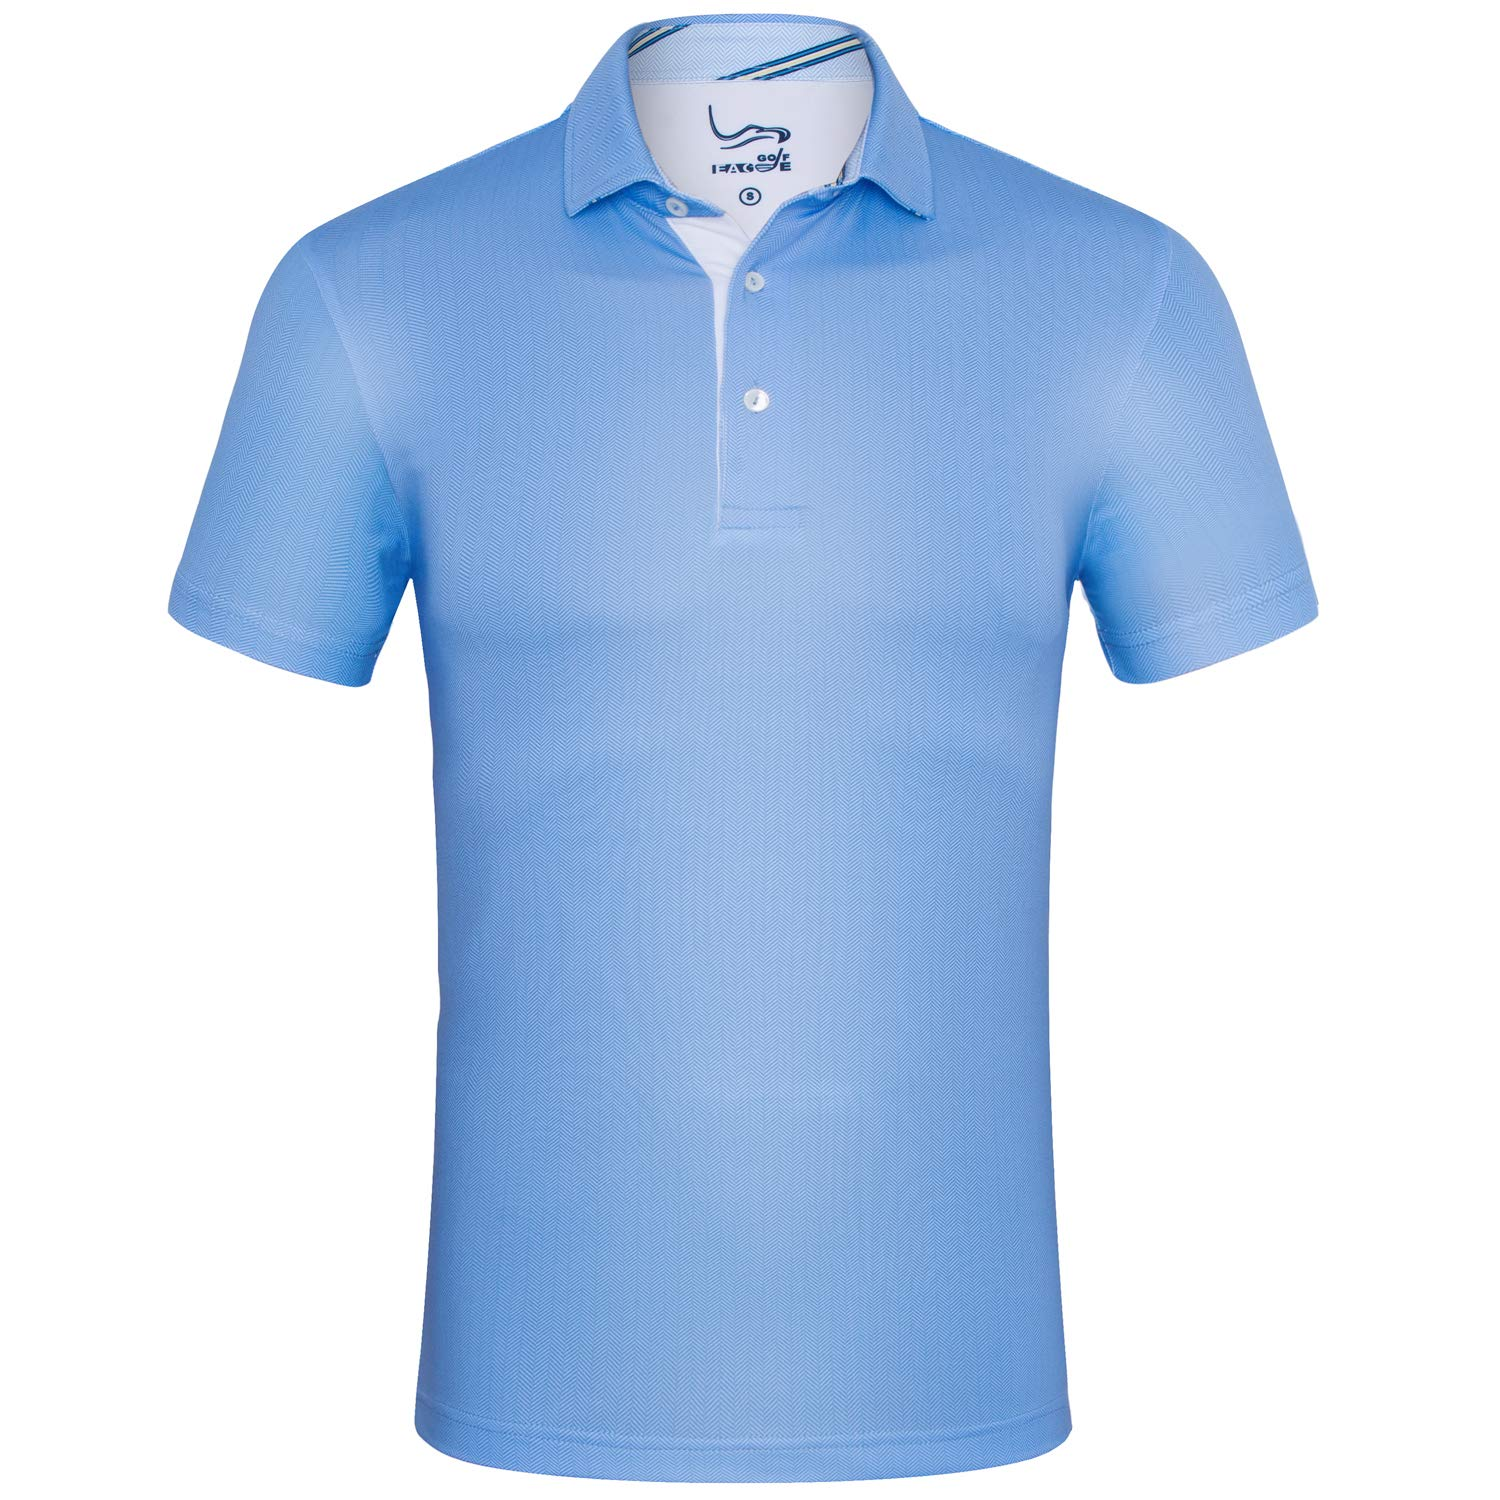 EAGEGOF Regular Fit Men's Shirt Stretch Tech Performance Golf Polo Shirt Short Sleeve XL (Sky Blue Fish Bone)